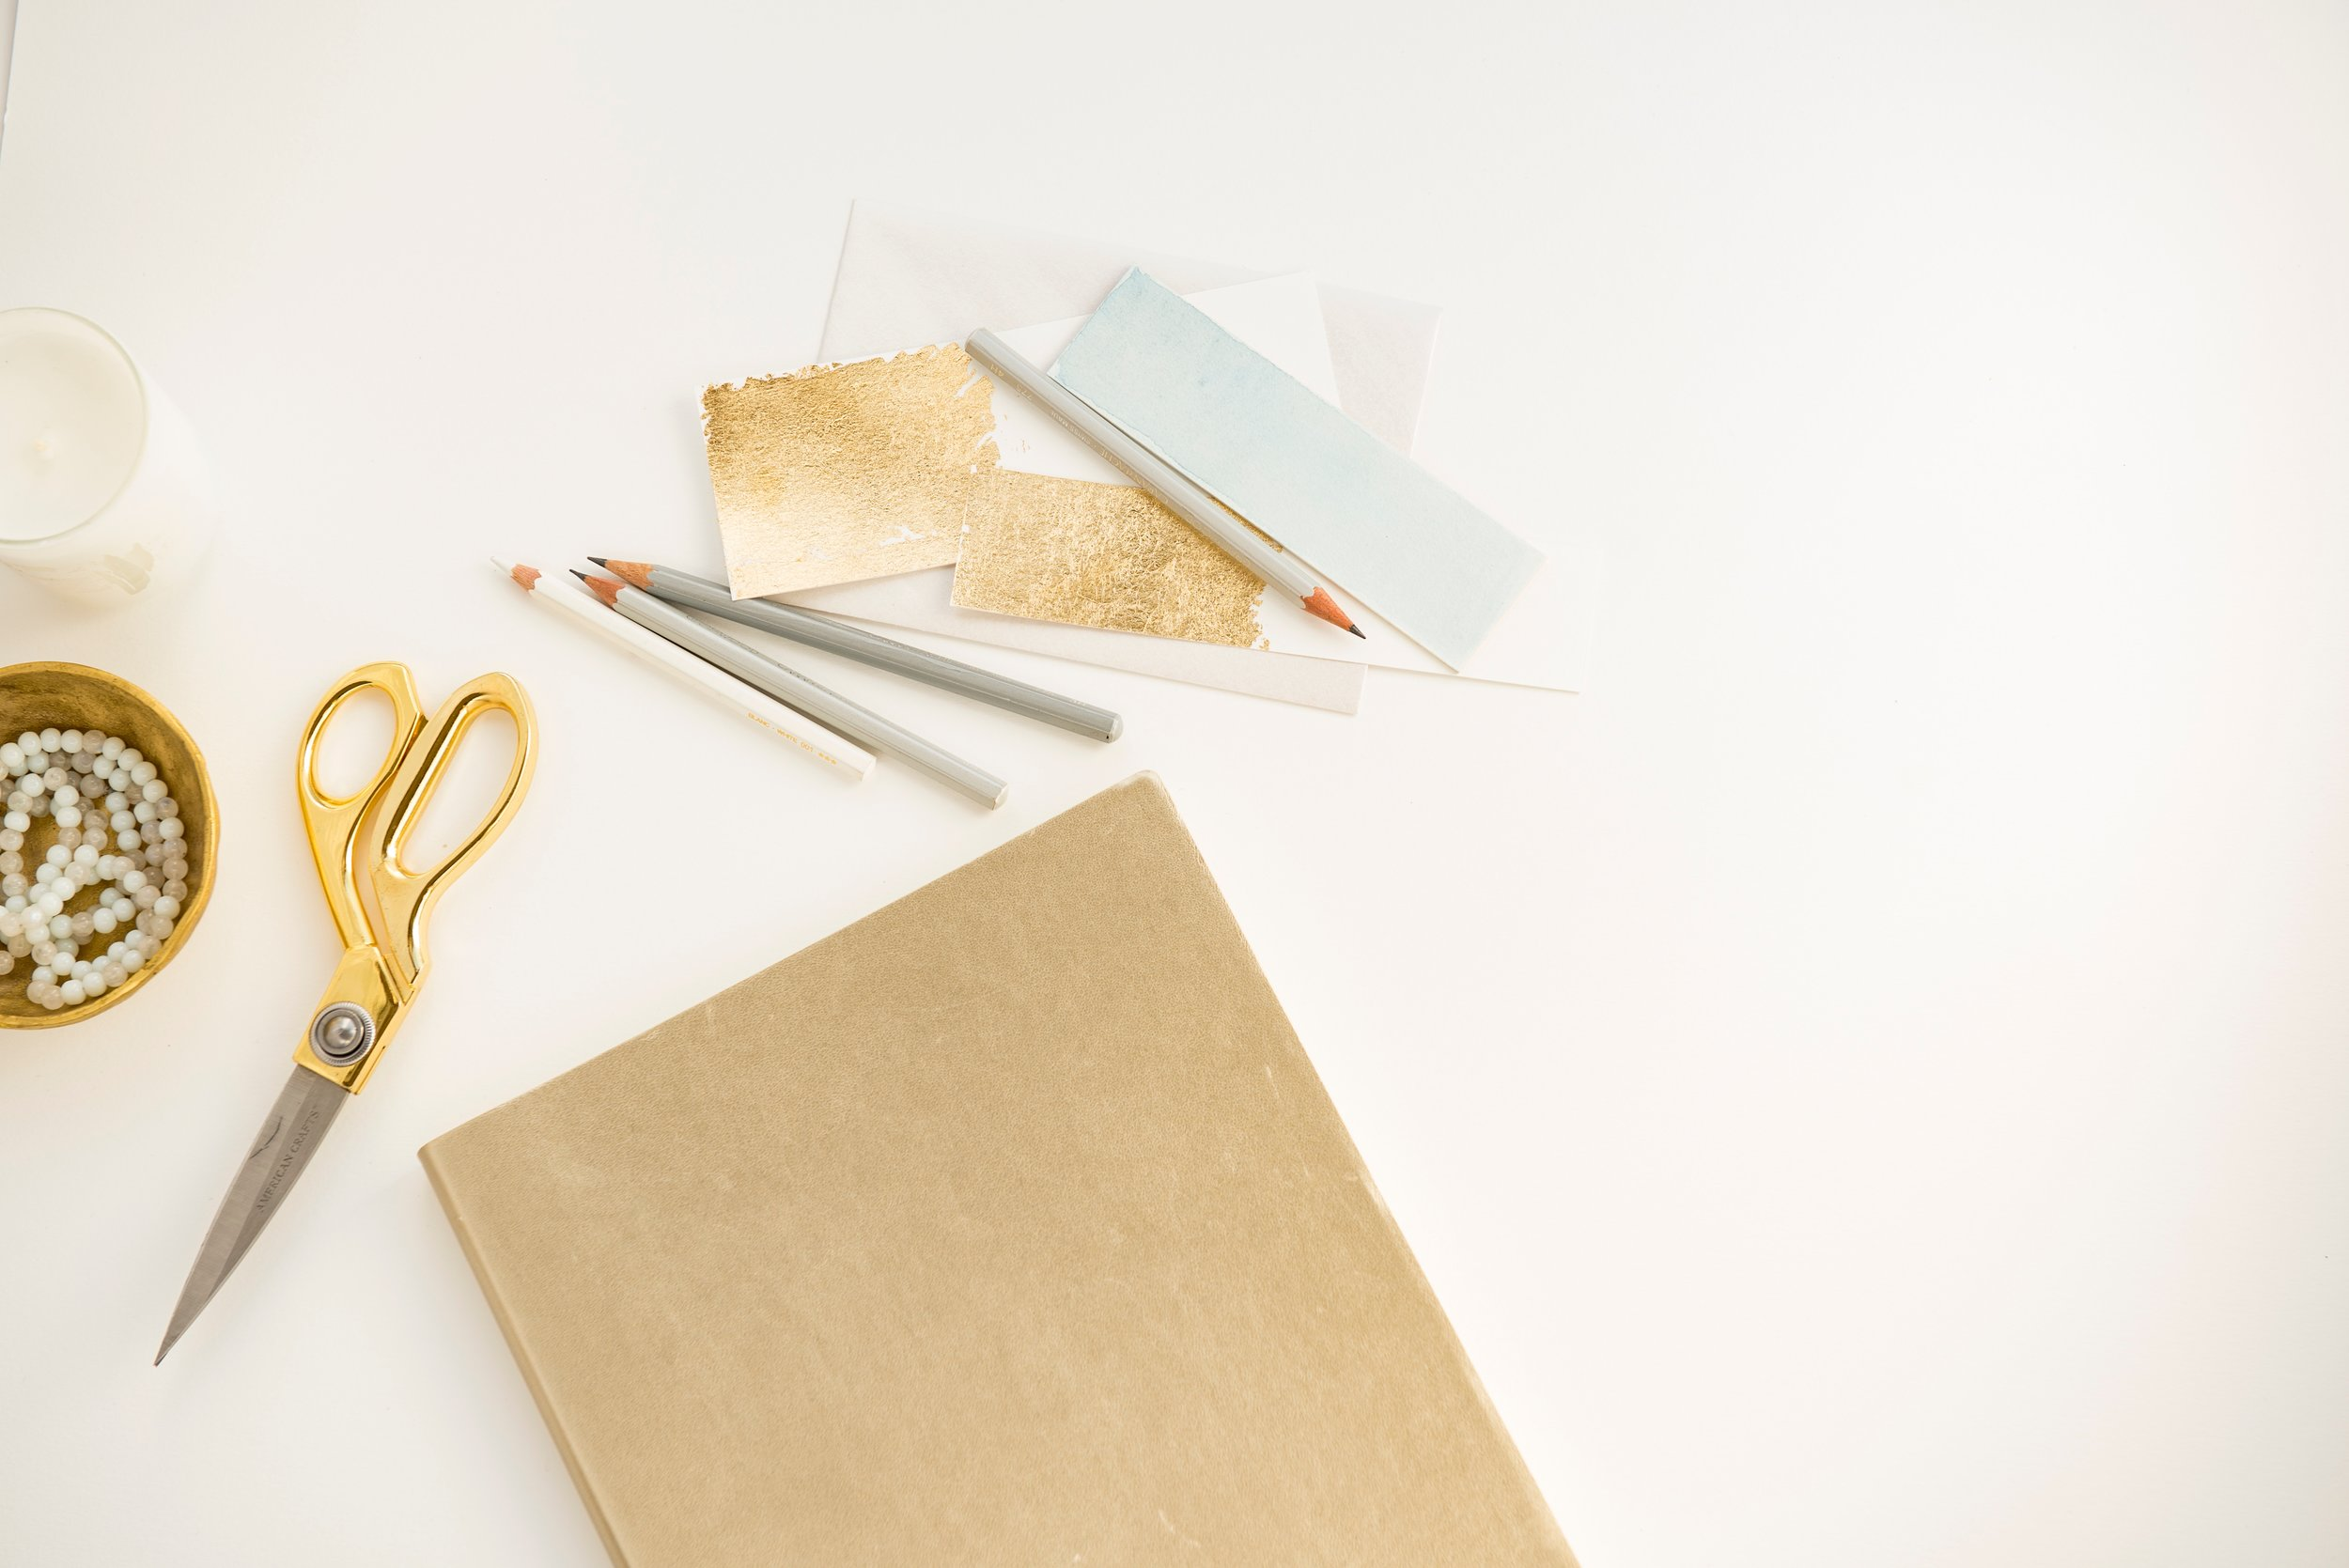 - This traditional craft allows you to add a personal touch to your print pieces. The process is easy with big results.